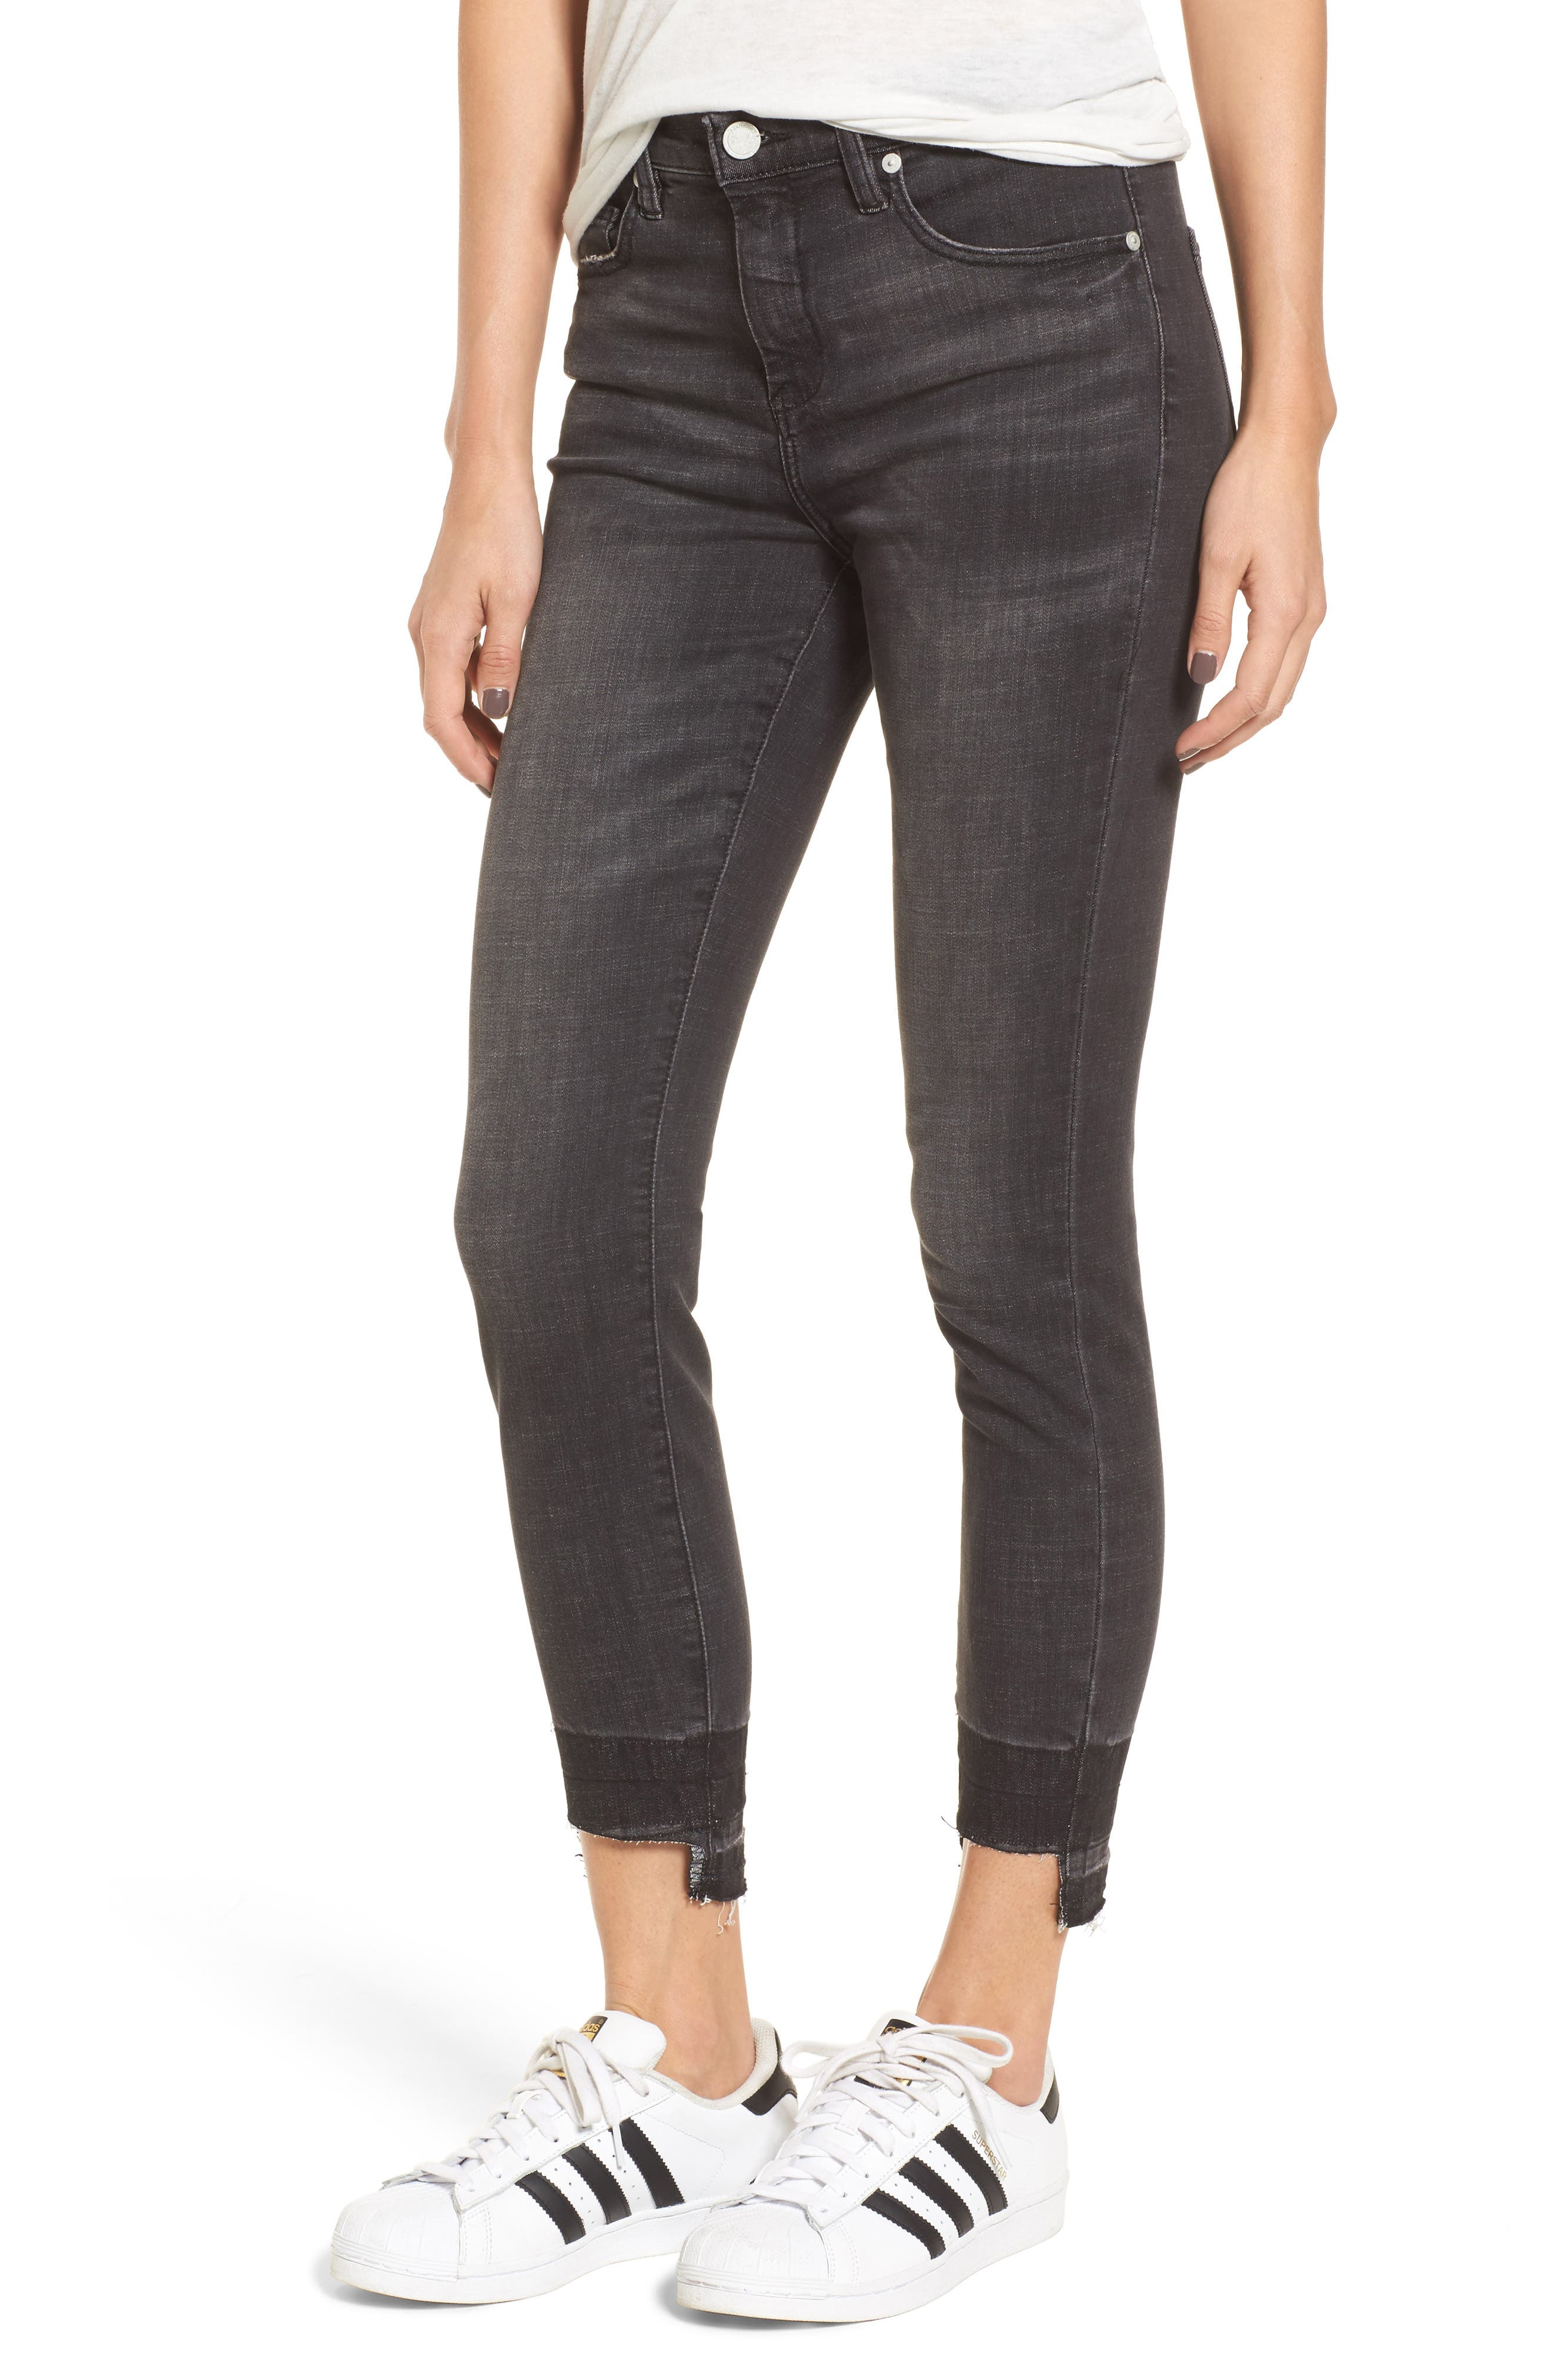 Cry Baby Release Hem Skinny Jeans,                             Main thumbnail 1, color,                             001